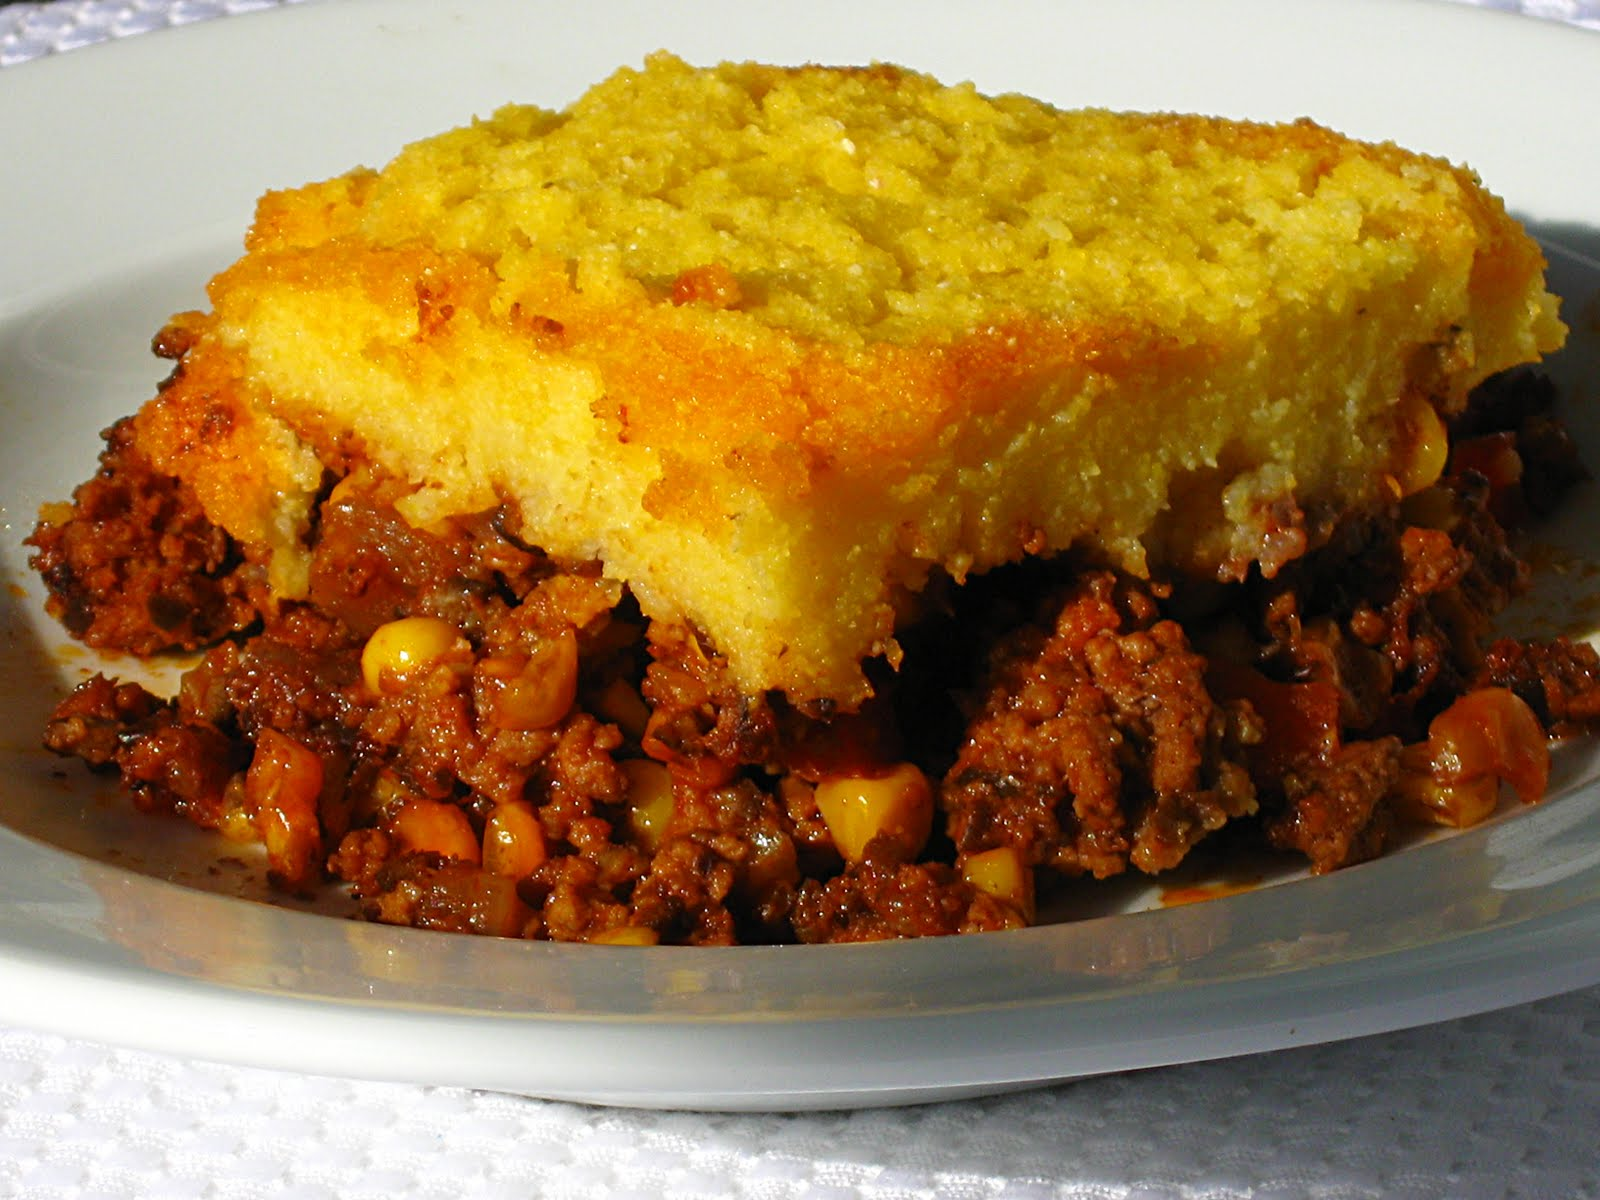 tamale mini tamale pie s tamale pie casserole tamale pie with cornmeal ...